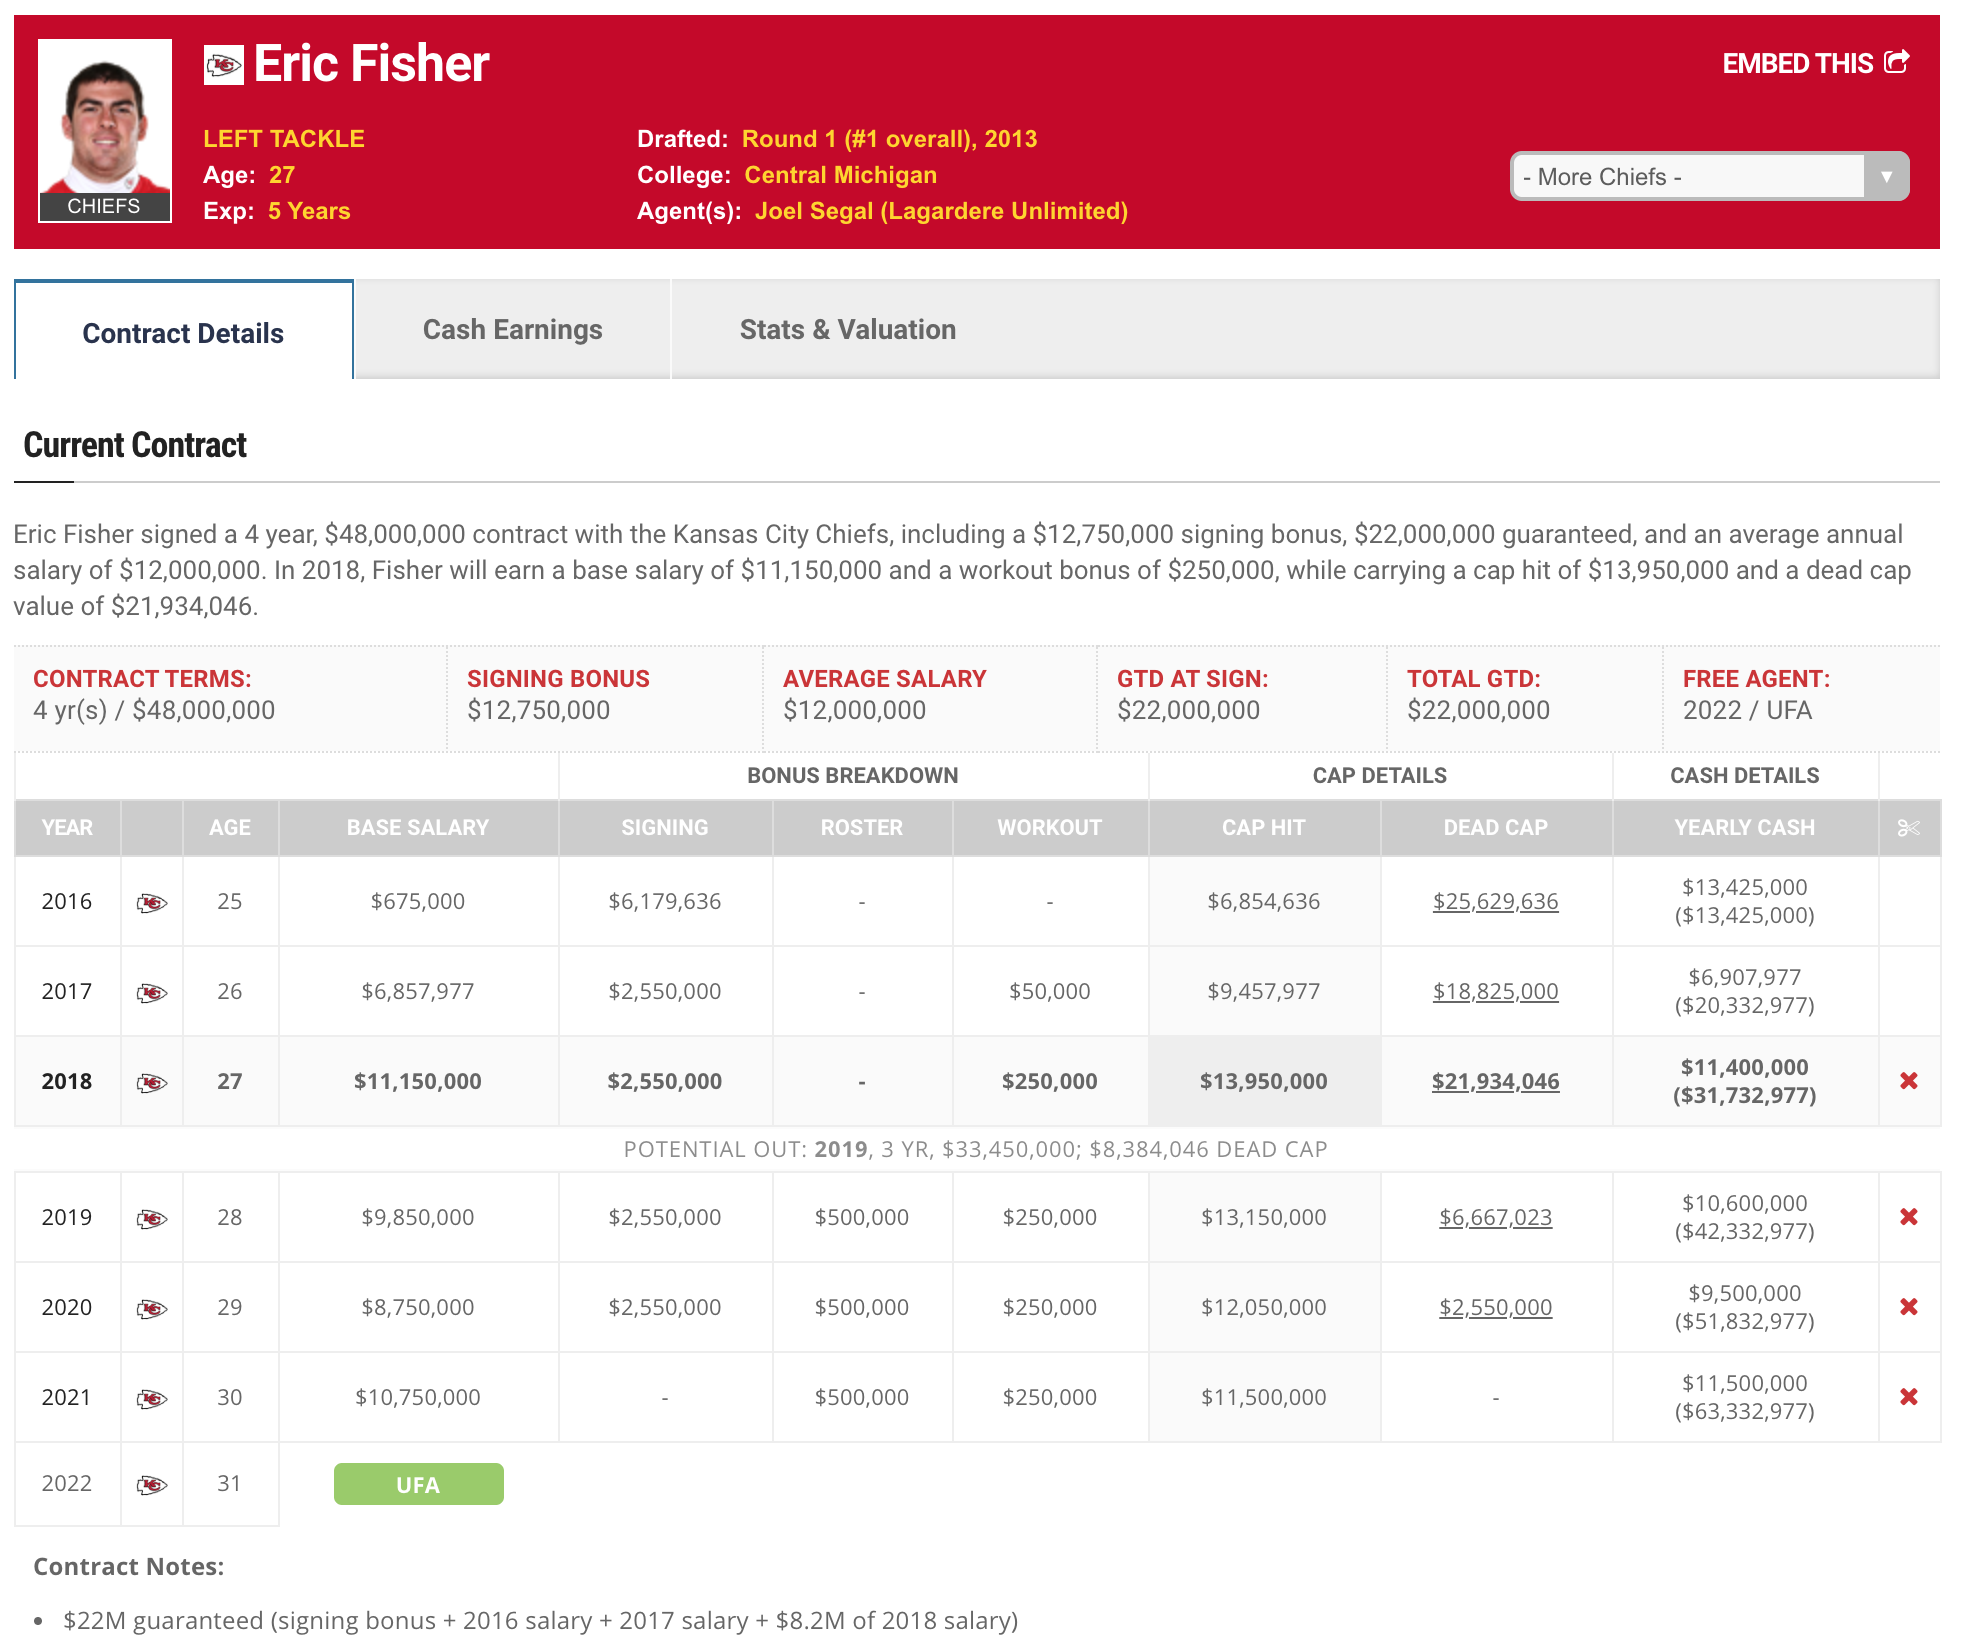 Eric Fisher contract